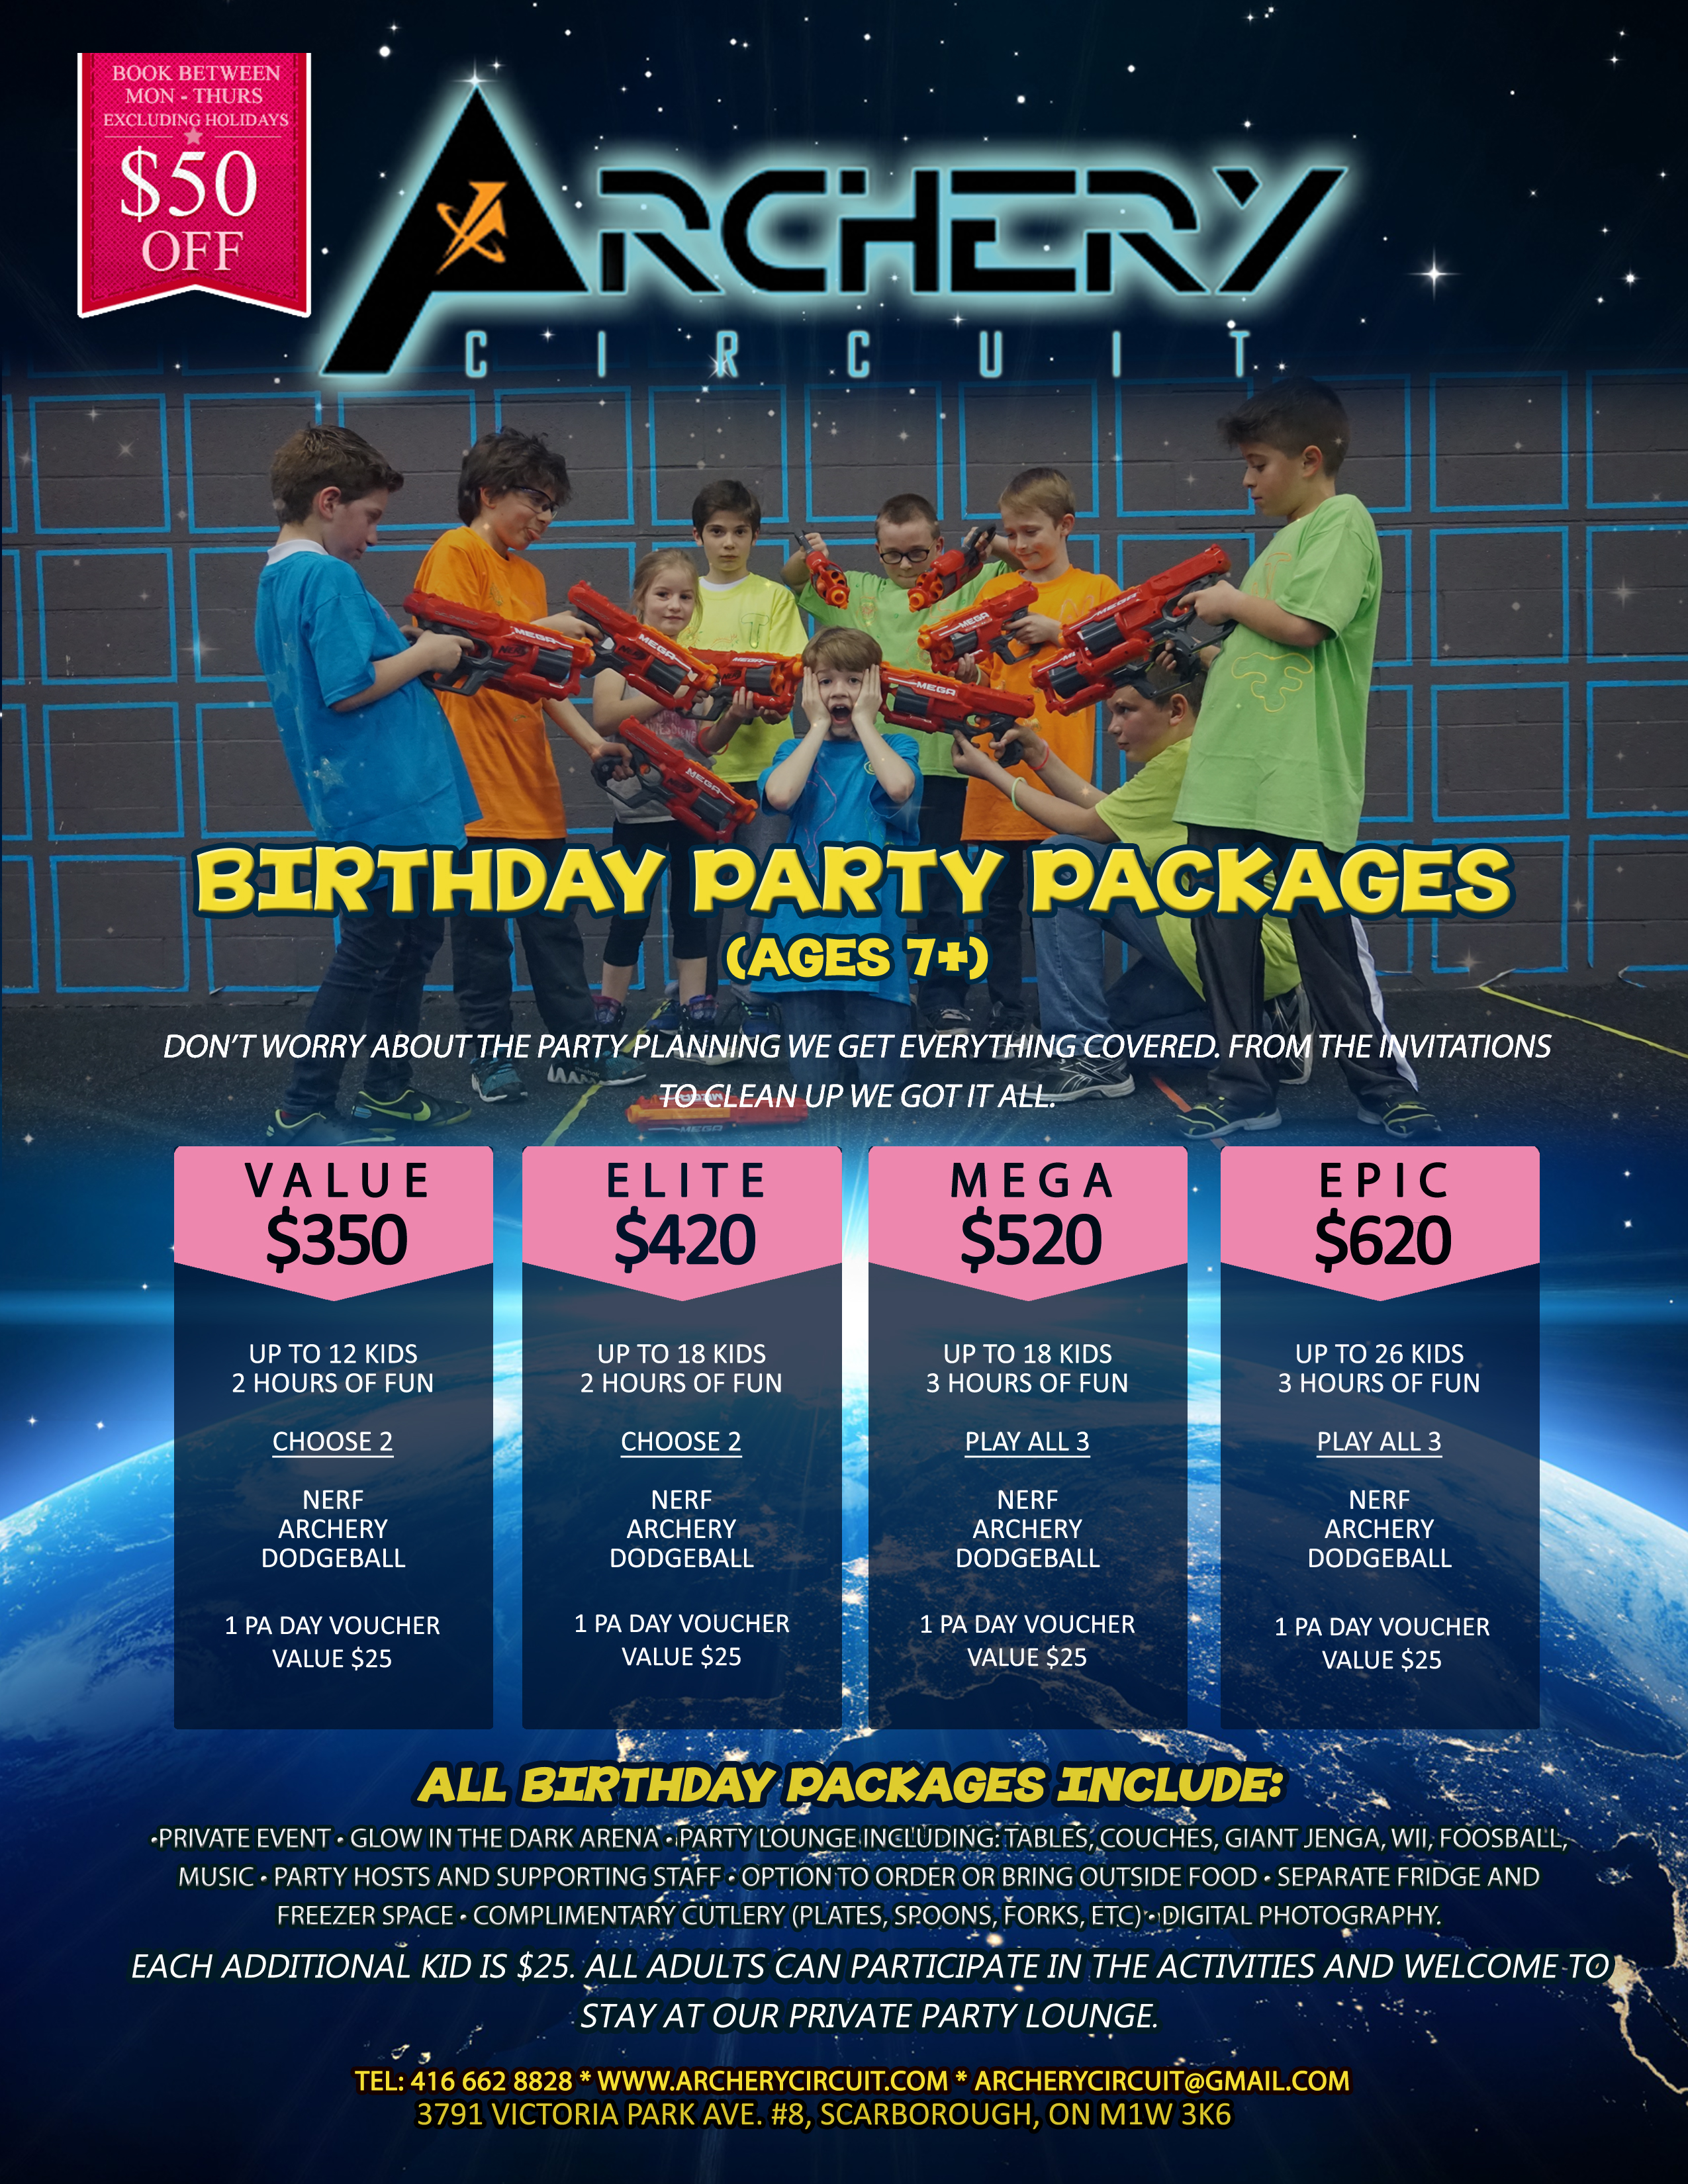 NEW BIRTHDAY PACKAGES NEW PRICE 2